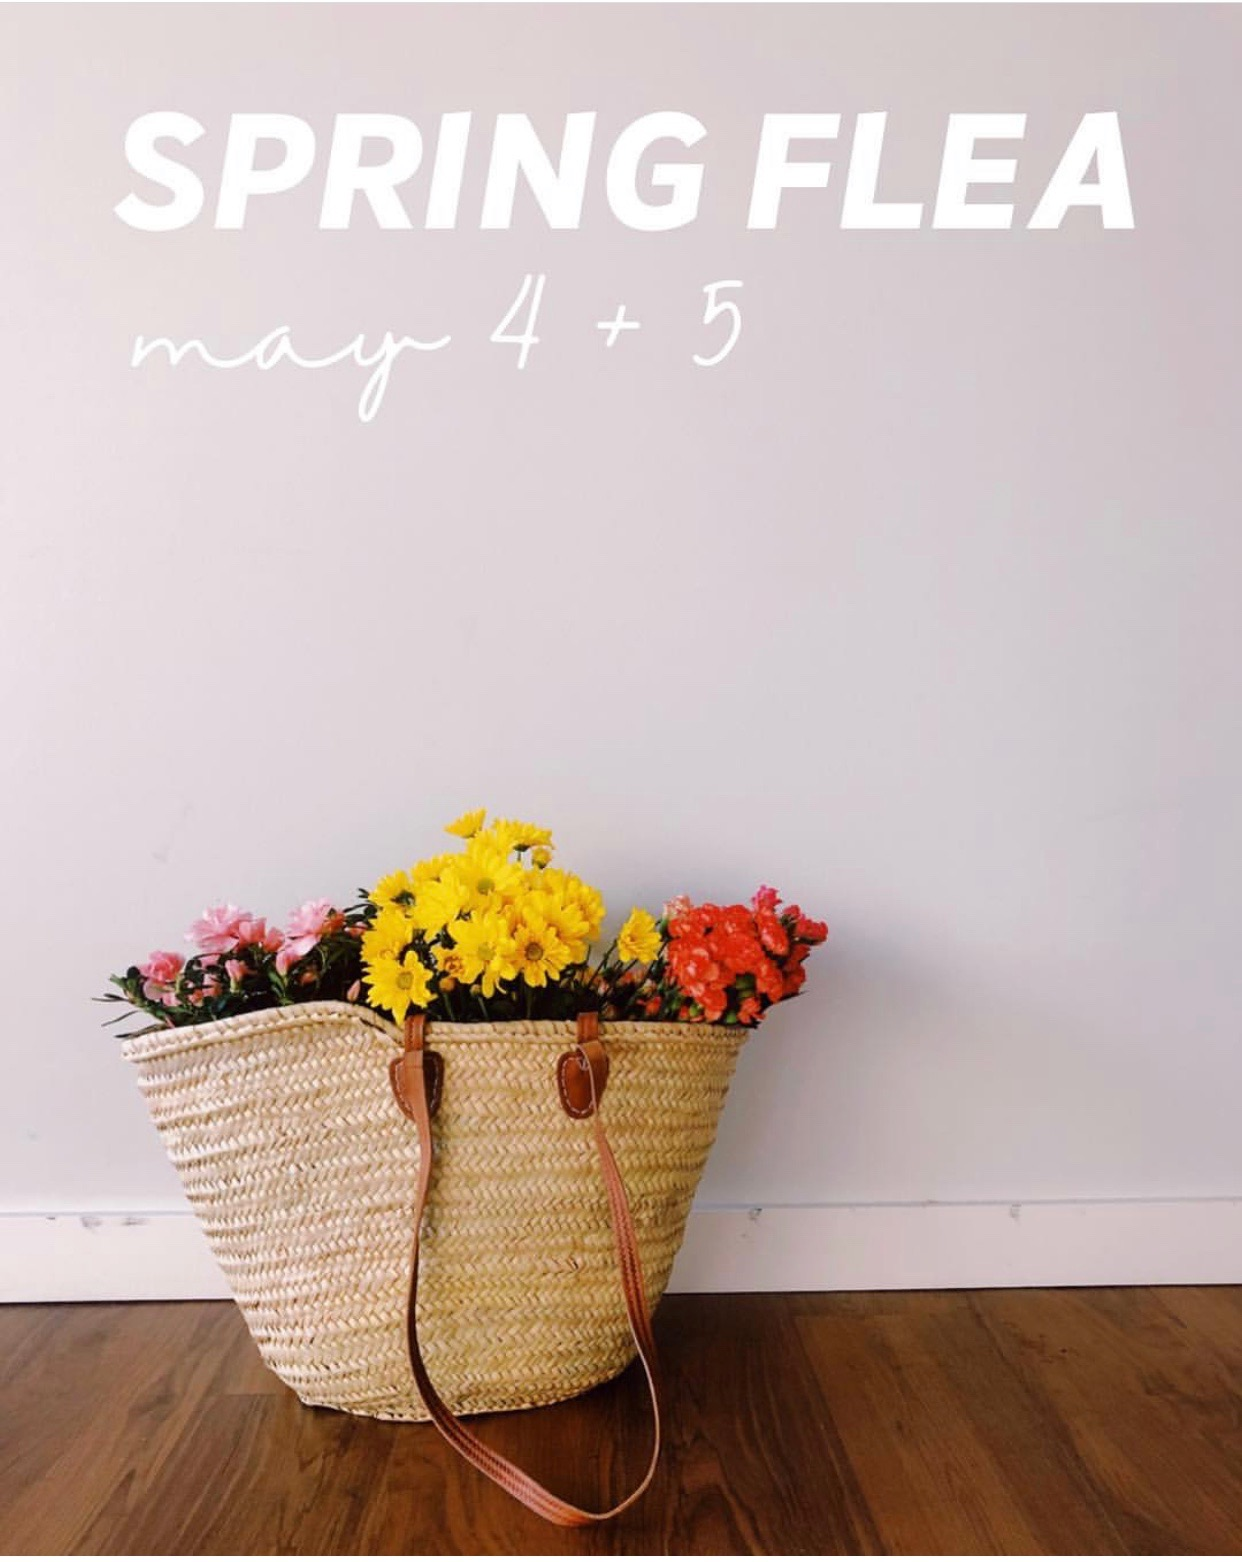 SPRING FLEA 2019    Saturday, May 4, 2019 (10am - 5pm)    Sunday, May 5, 2019 (10am - 4pm)    https://www.theclevelandflea.com/